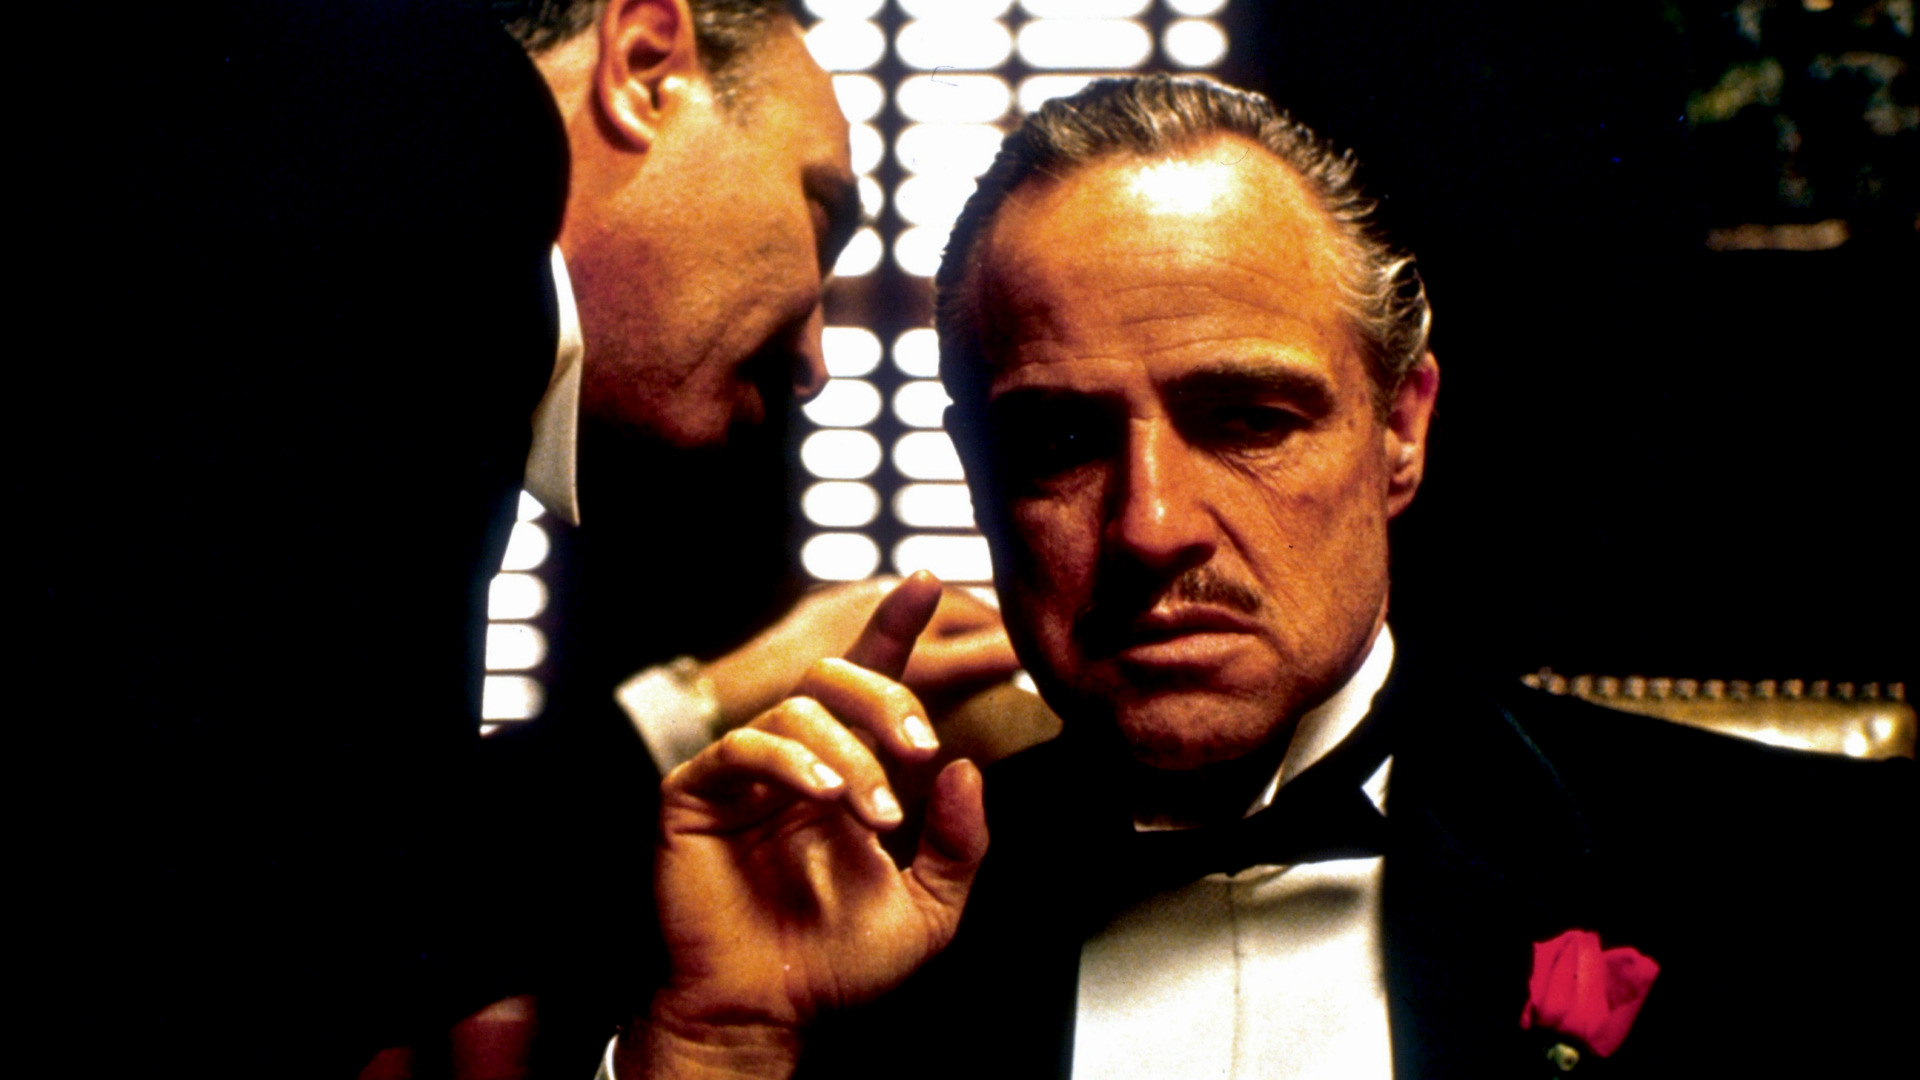 Oscar Godfather 1972 Highlight Of American Cinema In The 1970s